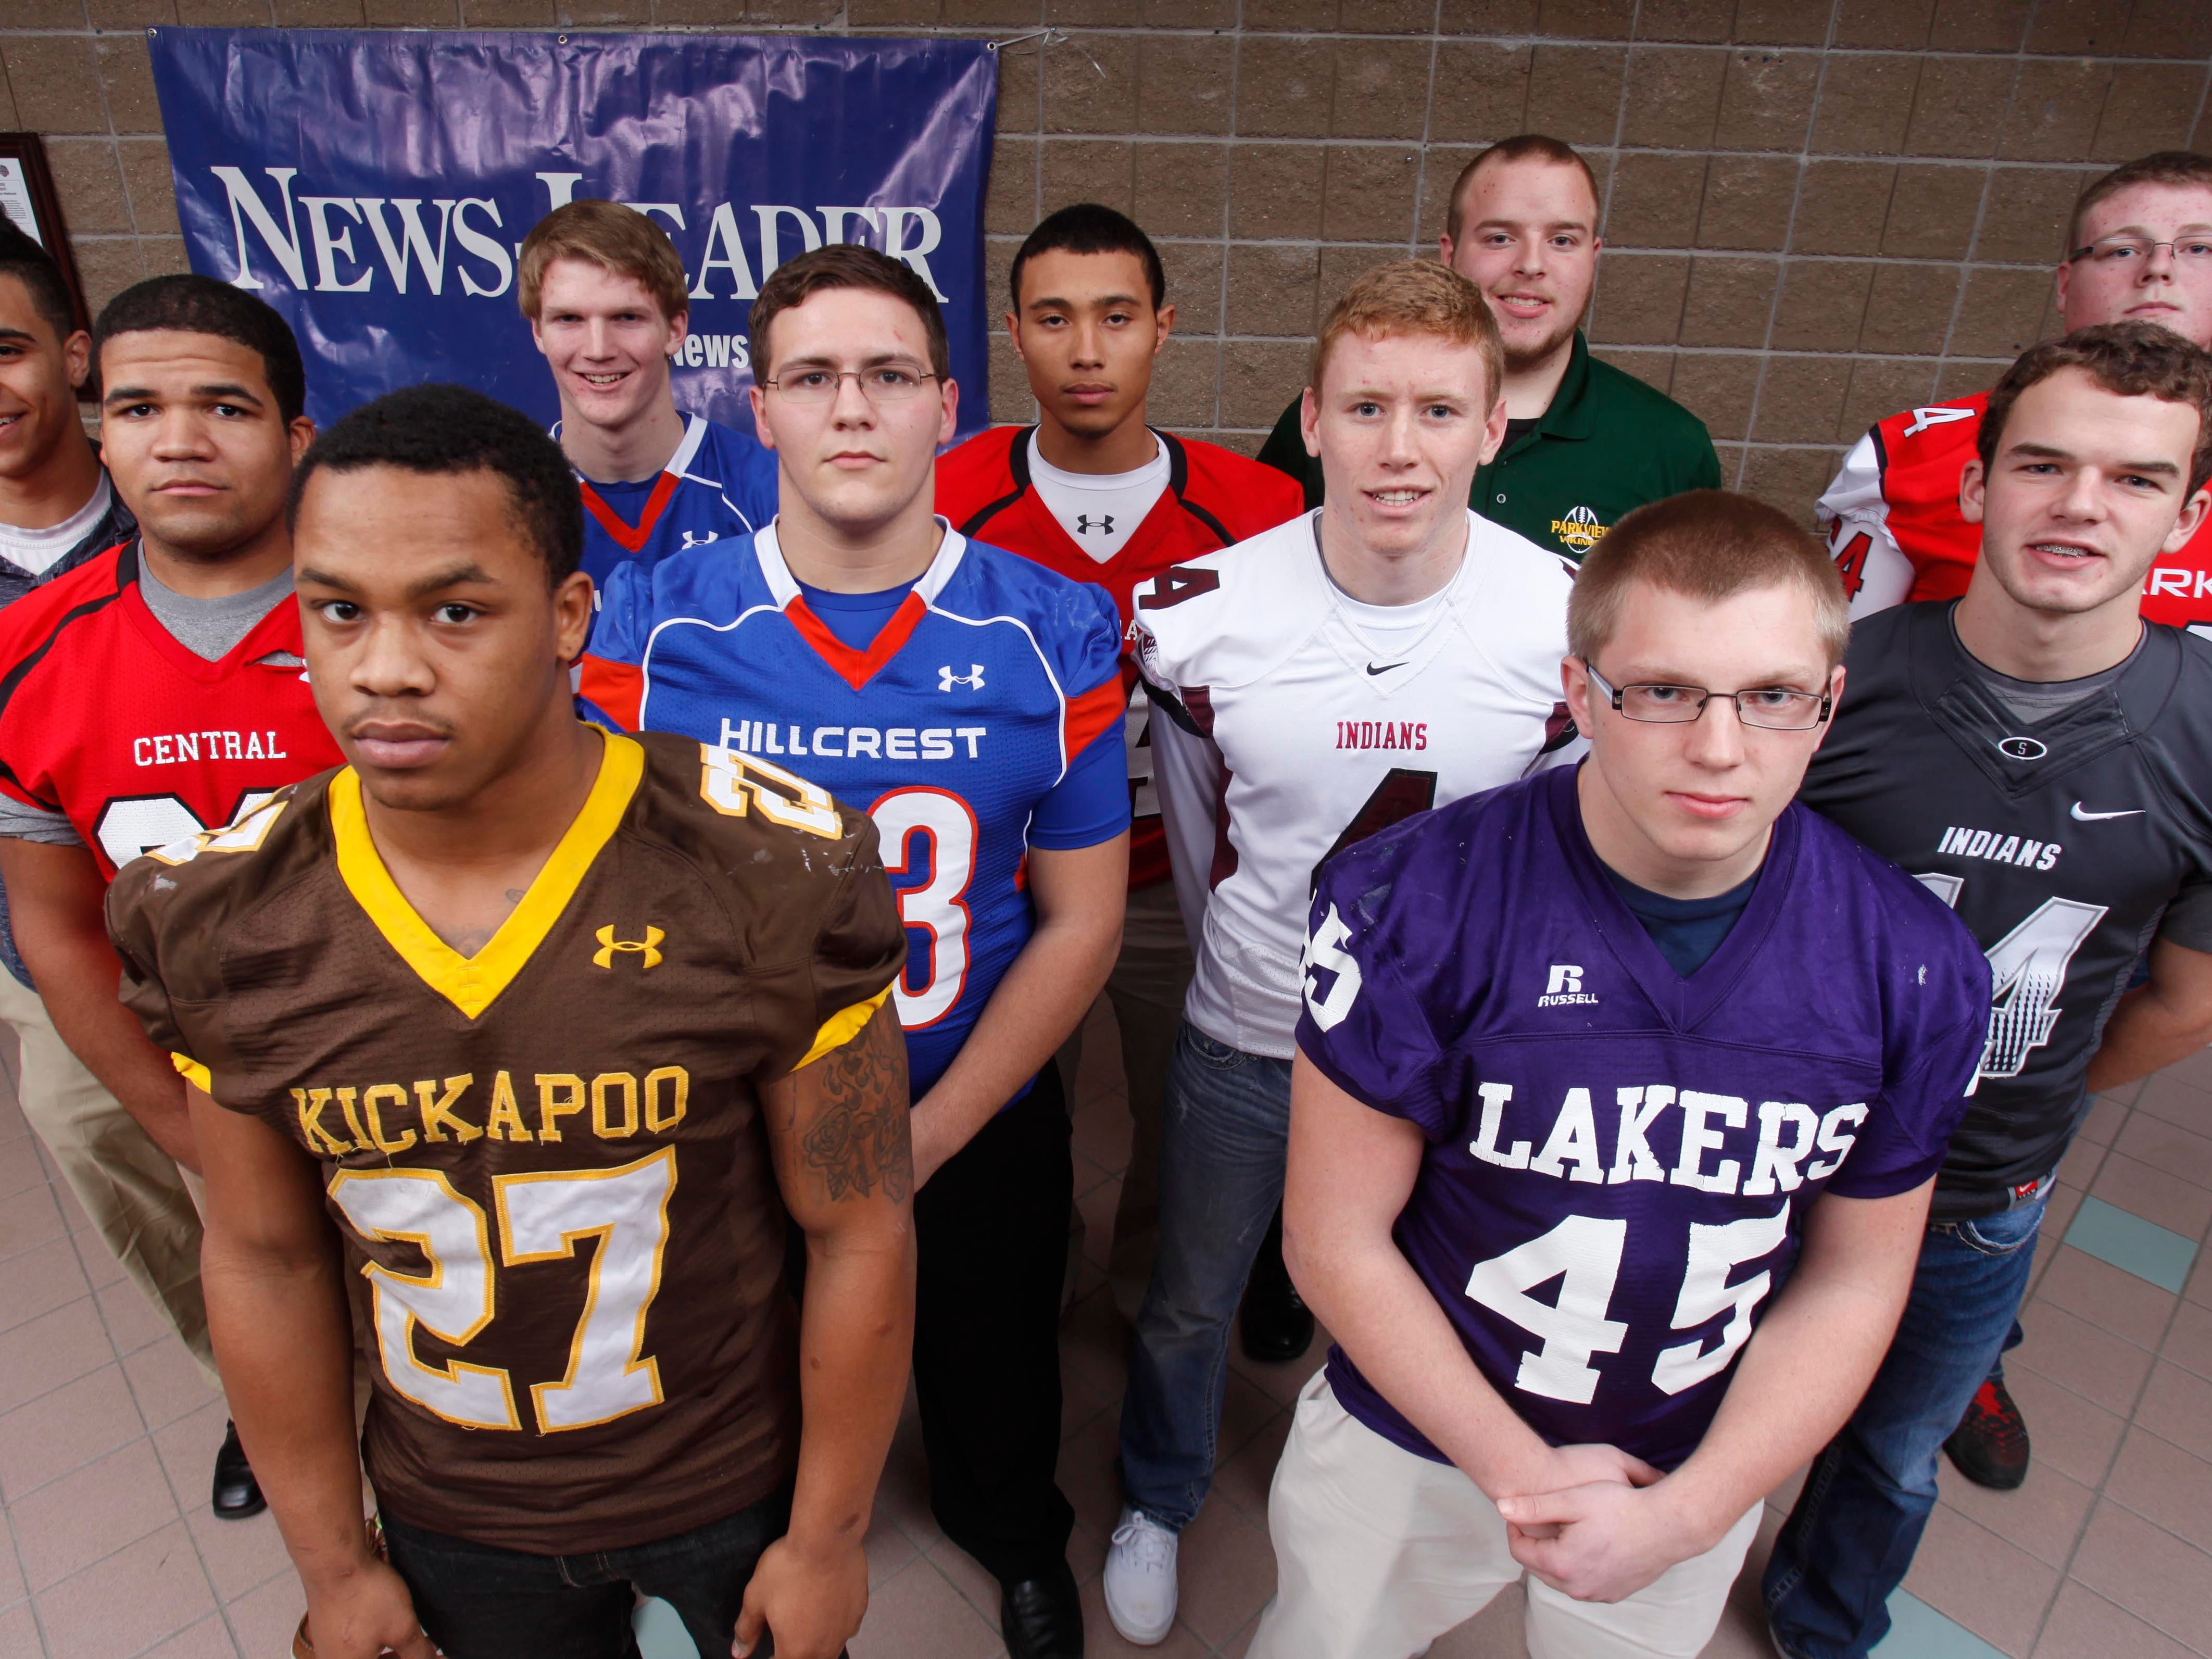 The All-Ozarks football team offense (Back row, from left) Connor Ratcliff of Parkview, Erik Savage of Hillcrest, Isaiah Holyfield of Central, Greg Robinson of Parkview, Connor Massey of Ozark, (middle row) Jordan Johnson of Central, Garrett McGuire of Hillcrest, Dallas Hester of Strafford, Chanler Collins of Strafford, (front row) Tony Grant of Kickapoo and Josh Martin of Camdenton.